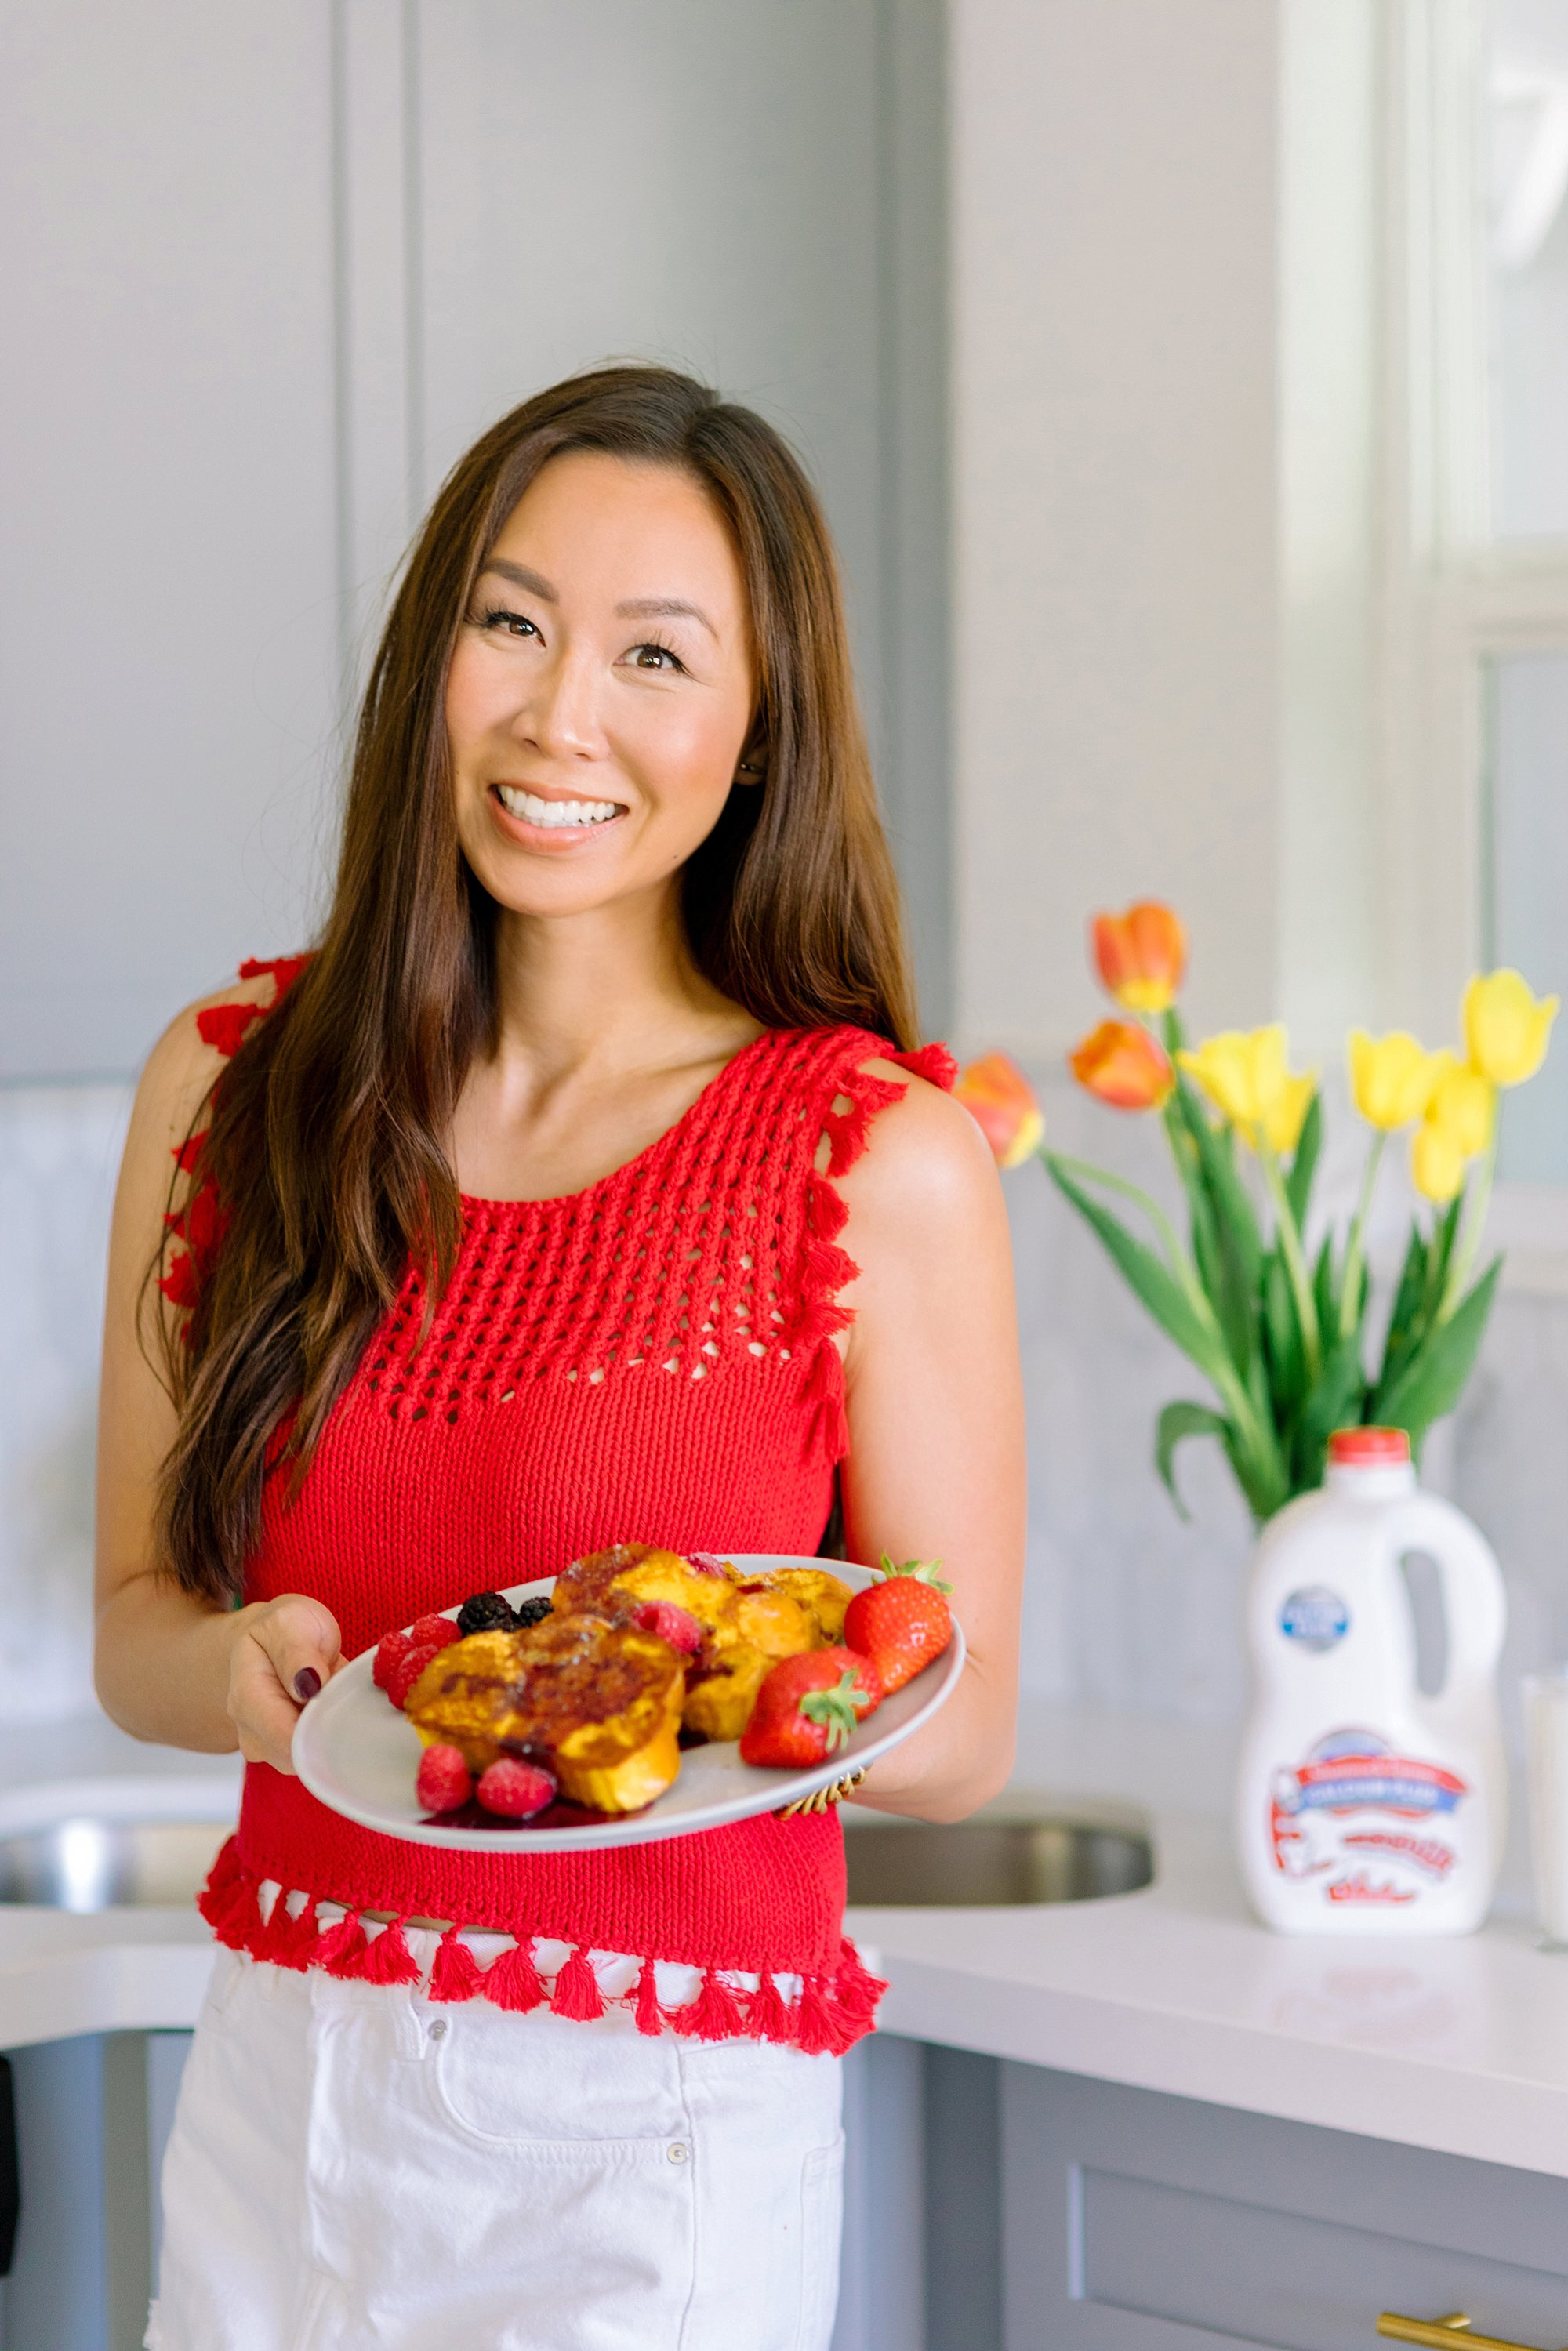 Lifestyle blogger in Phoenix Diana Elizabeth holding easy to make French toast recipe on the blog. Wearing red tassel crochet top. #frenchtoast #foodphotography